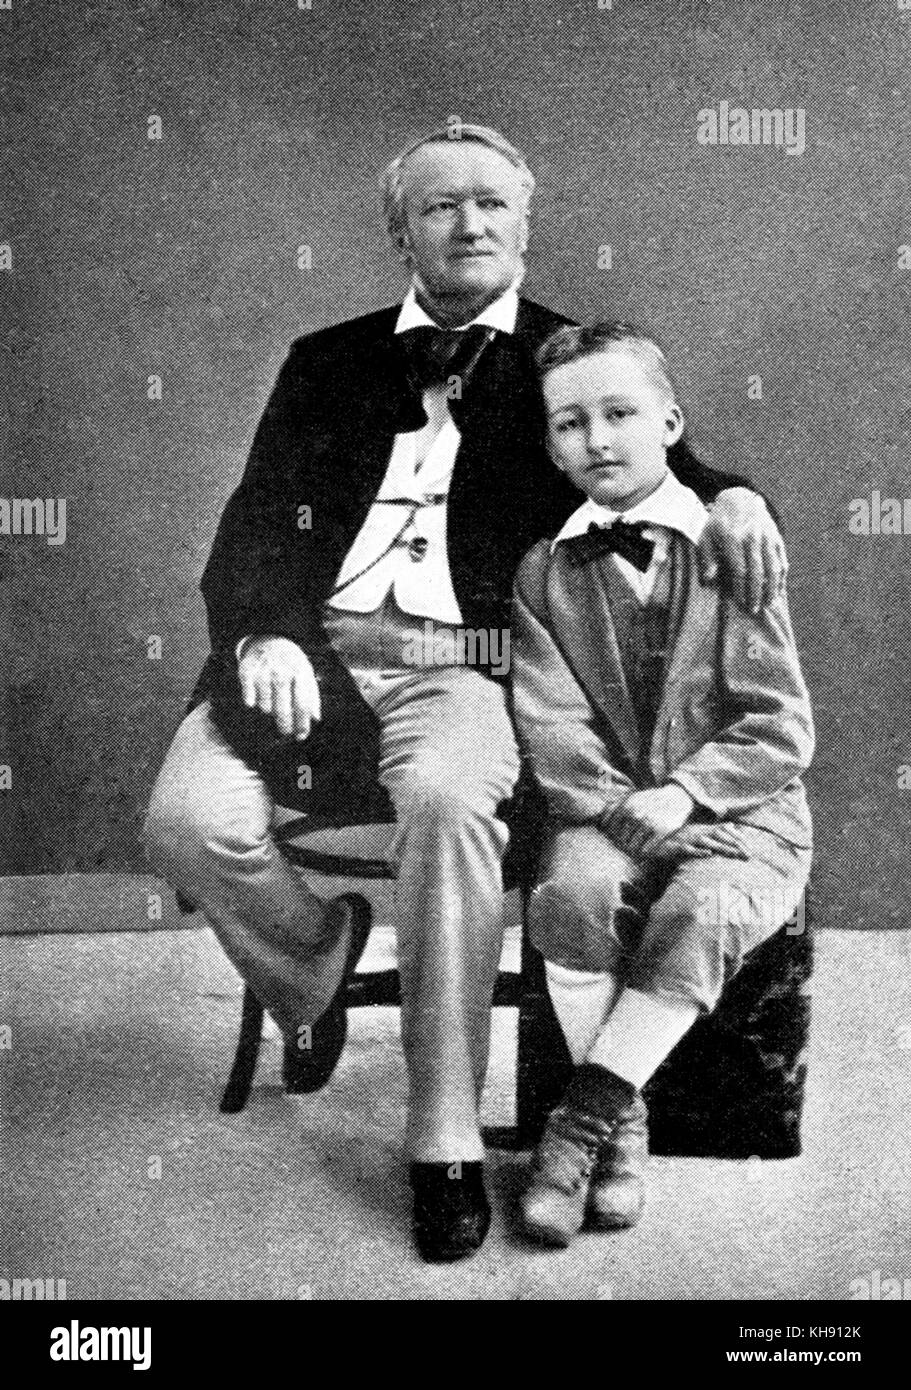 Richard Wagner with his son Siegfried as a young boy. RW: German composer & author, 22 May 1813 - 13 February - Stock Image